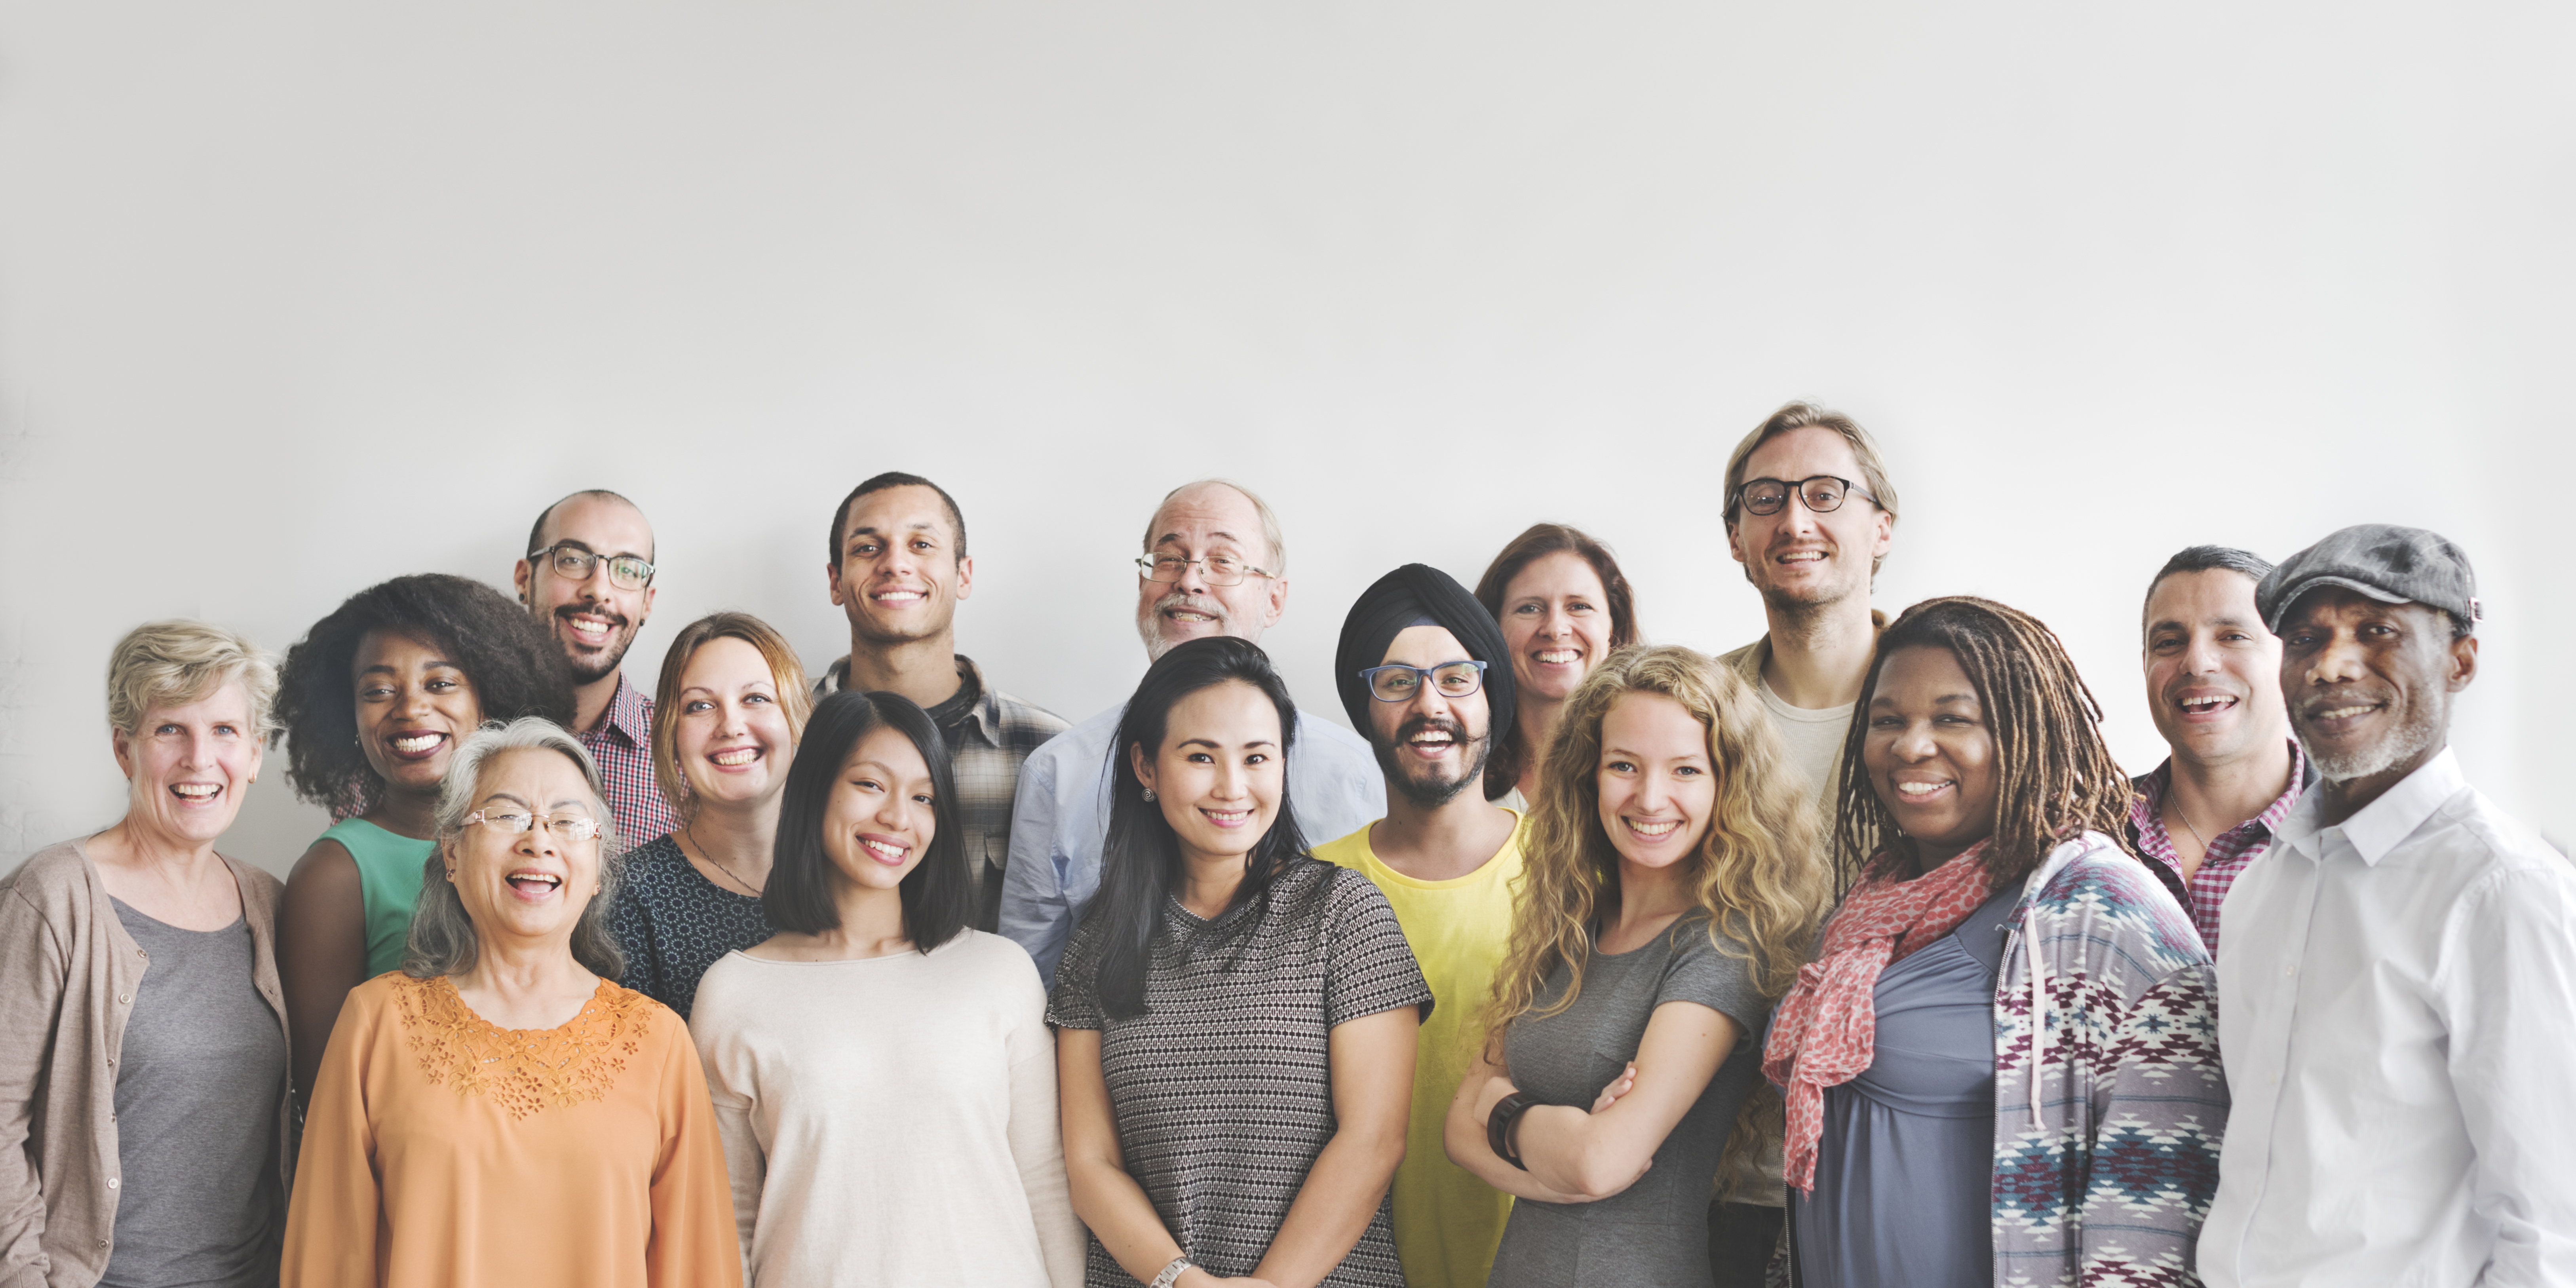 diverse group of people smiling